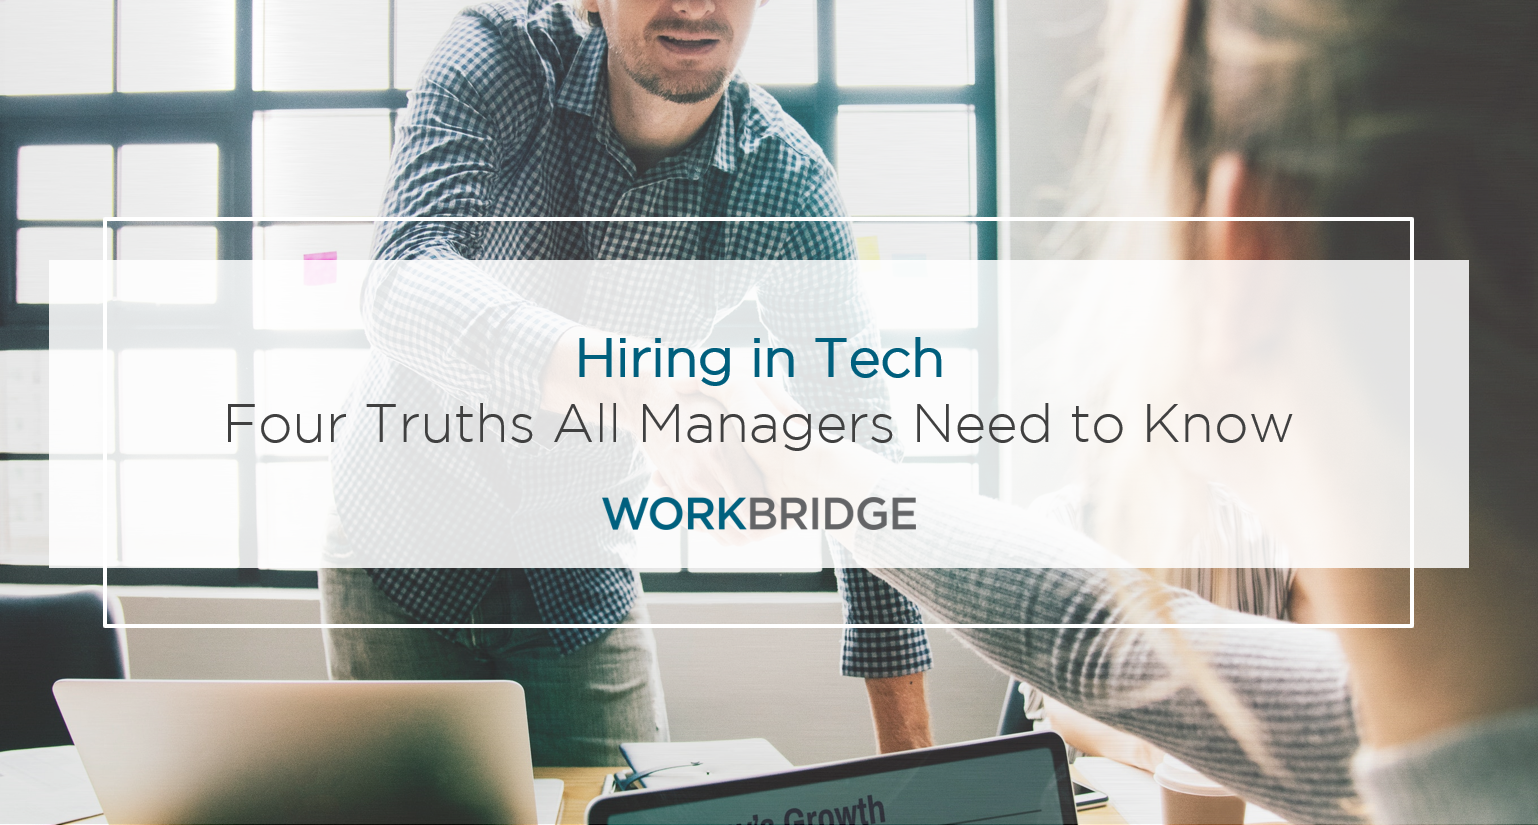 Hiring-in-tech, workbridge-associates,